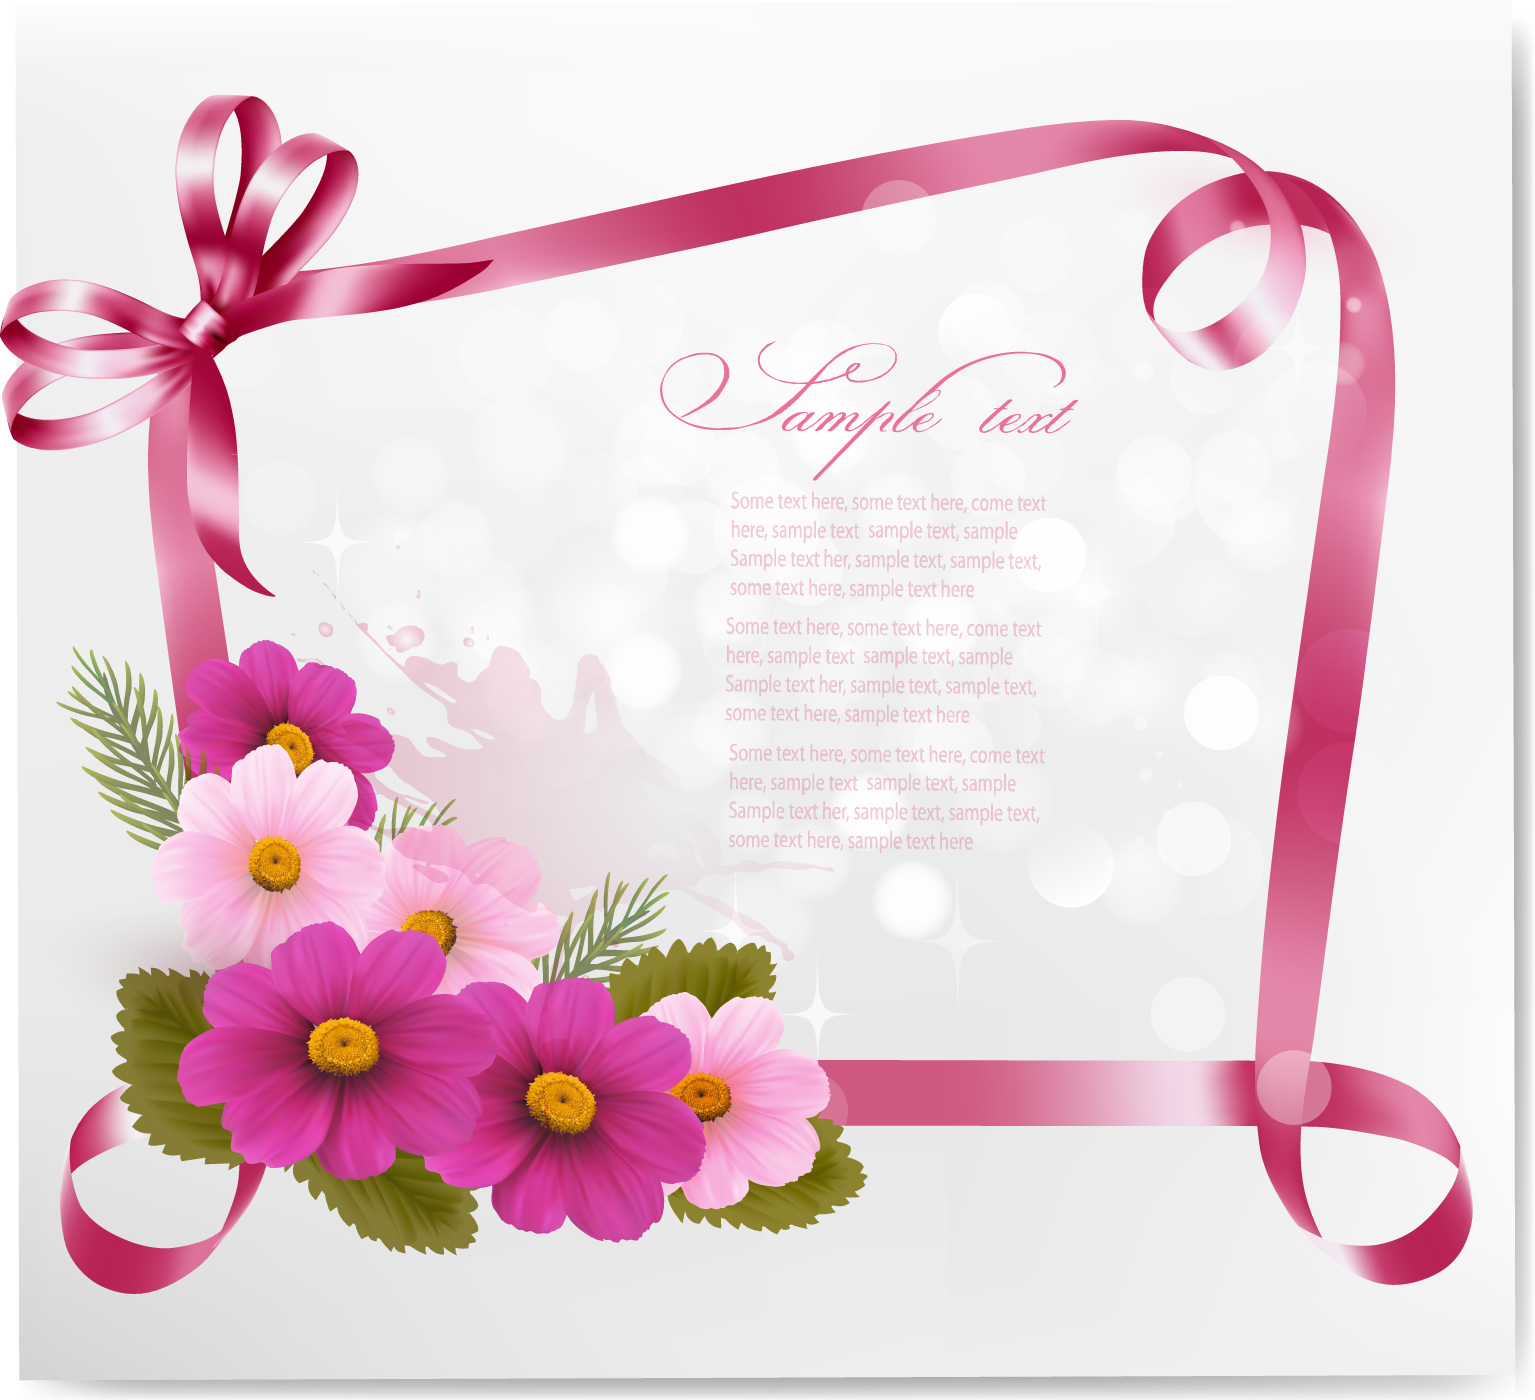 Princess Birthday Invitation Templates as nice invitation ideas